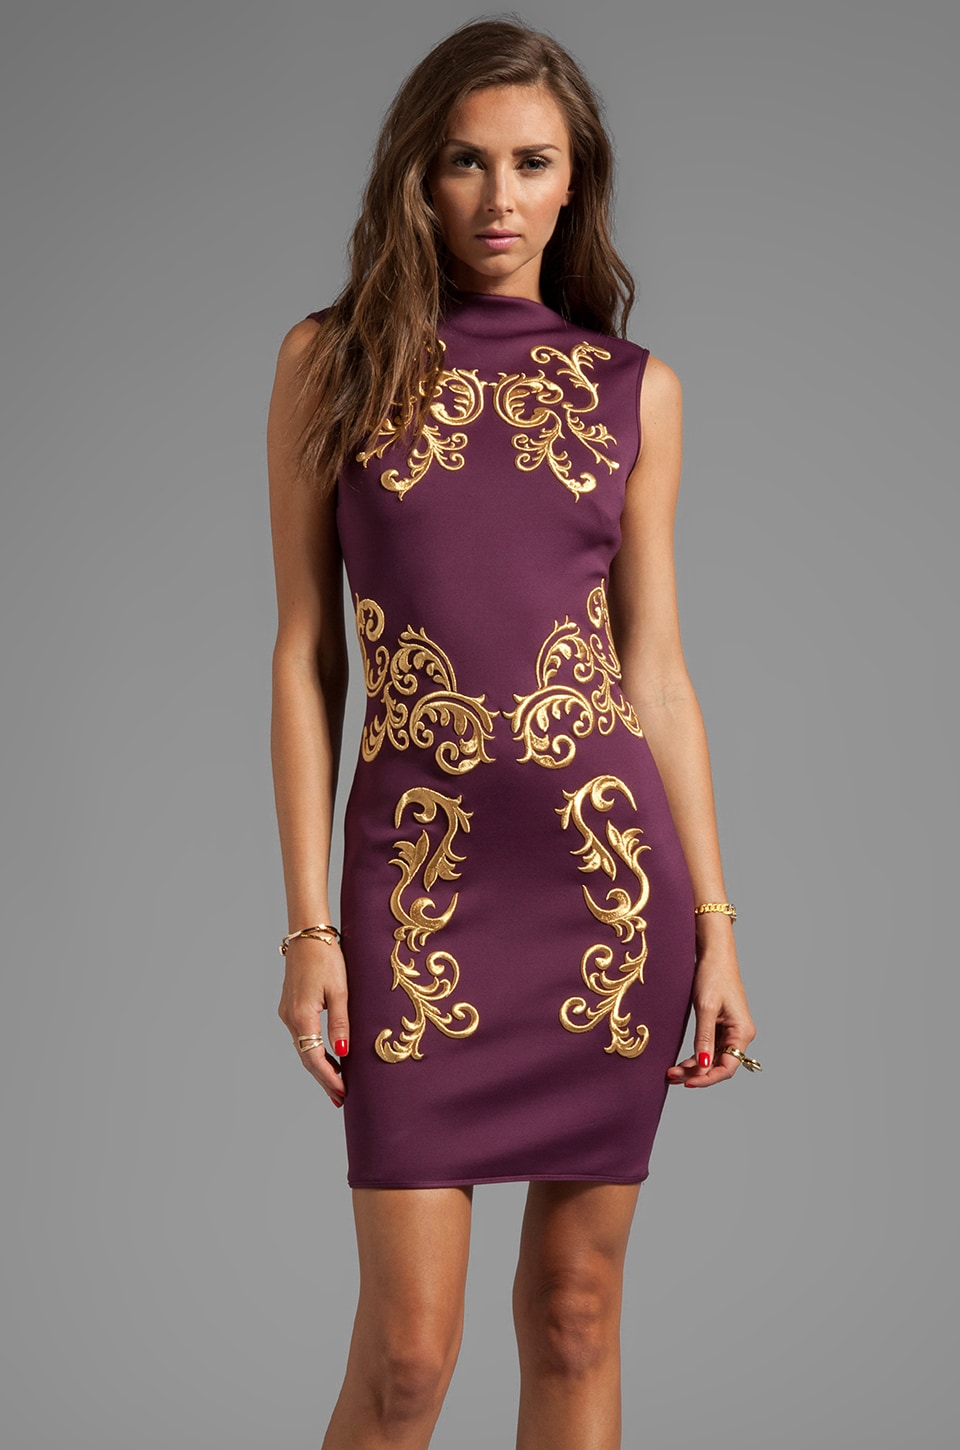 Clover Canyon Embroidery Neoprene Dress in Merlot/Gold